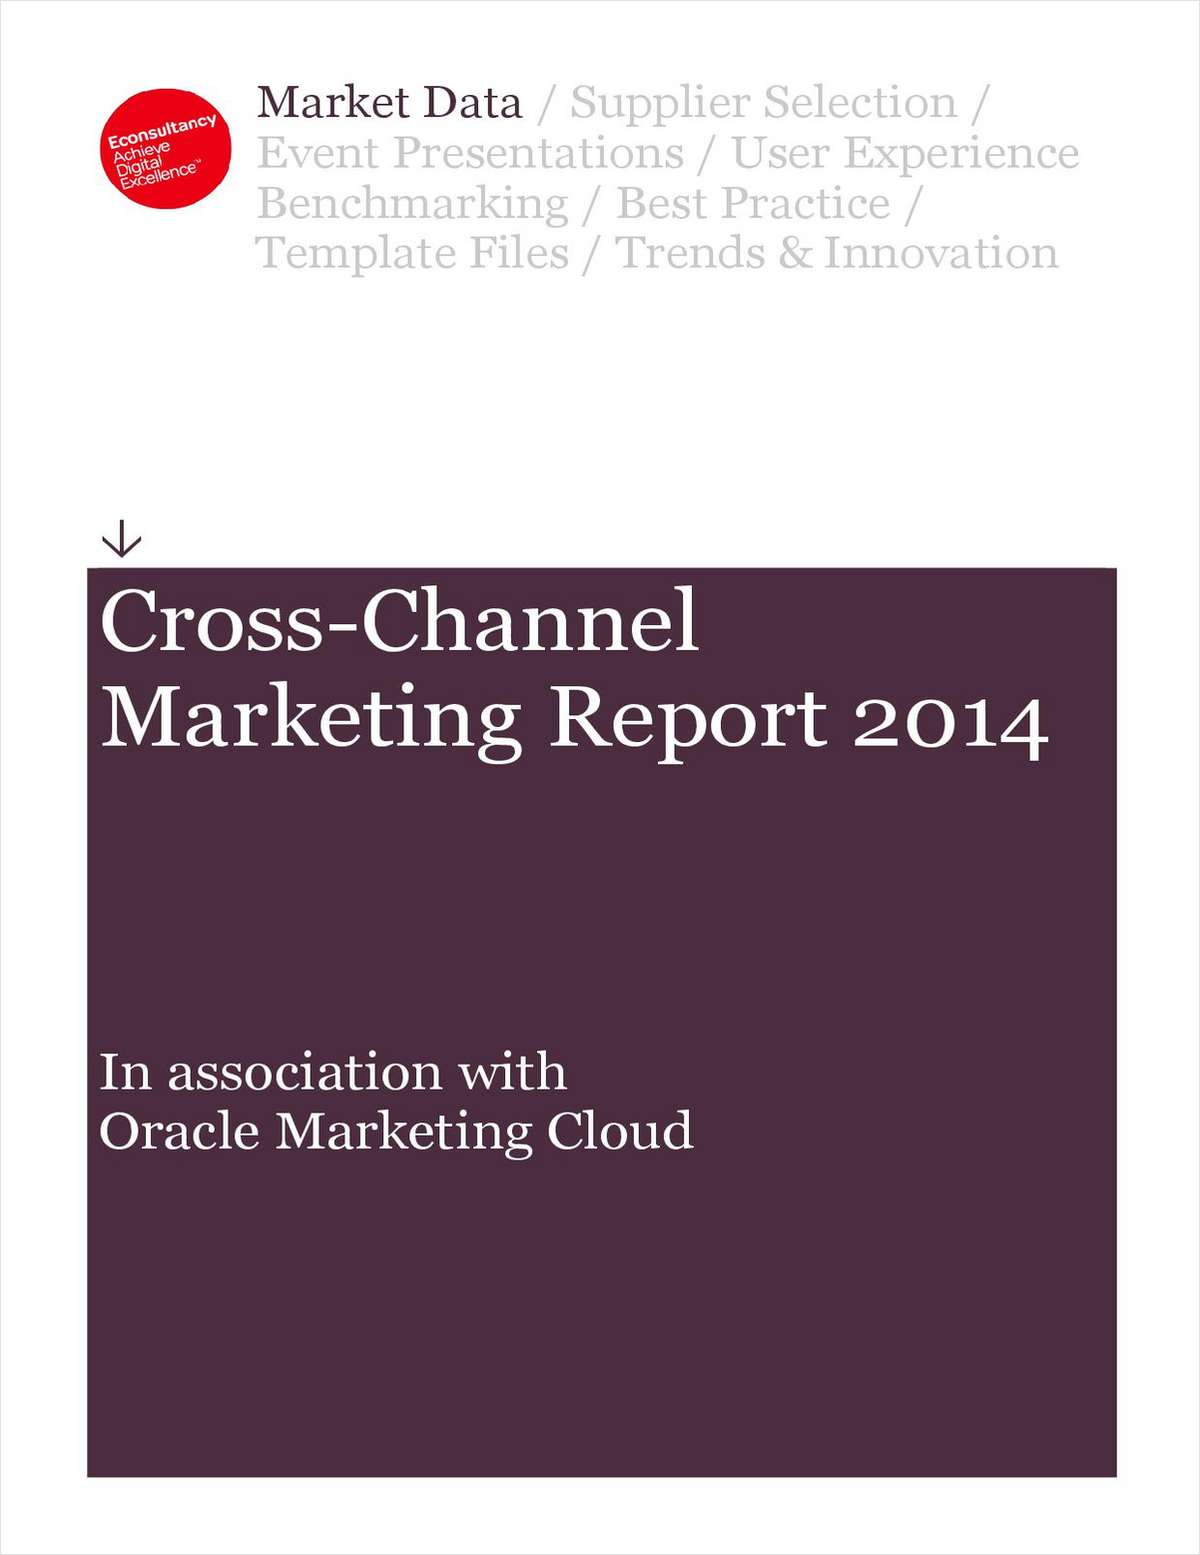 Cross-Channel Marketing Report 2014 - An Excerpt